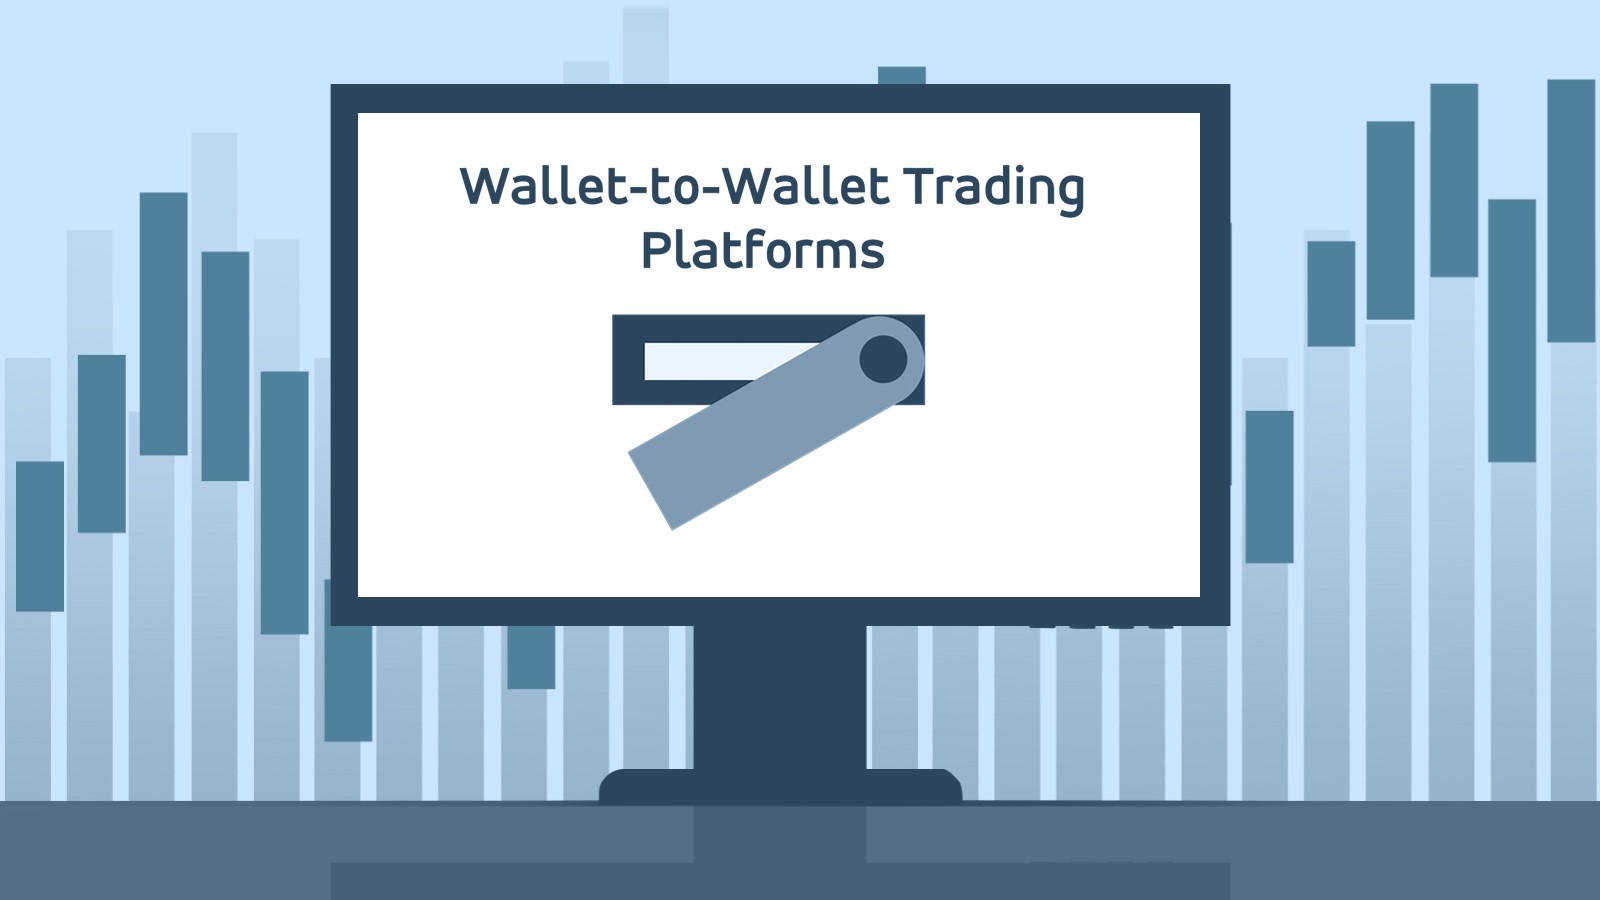 Wallet-to-Wallet Trading Platforms